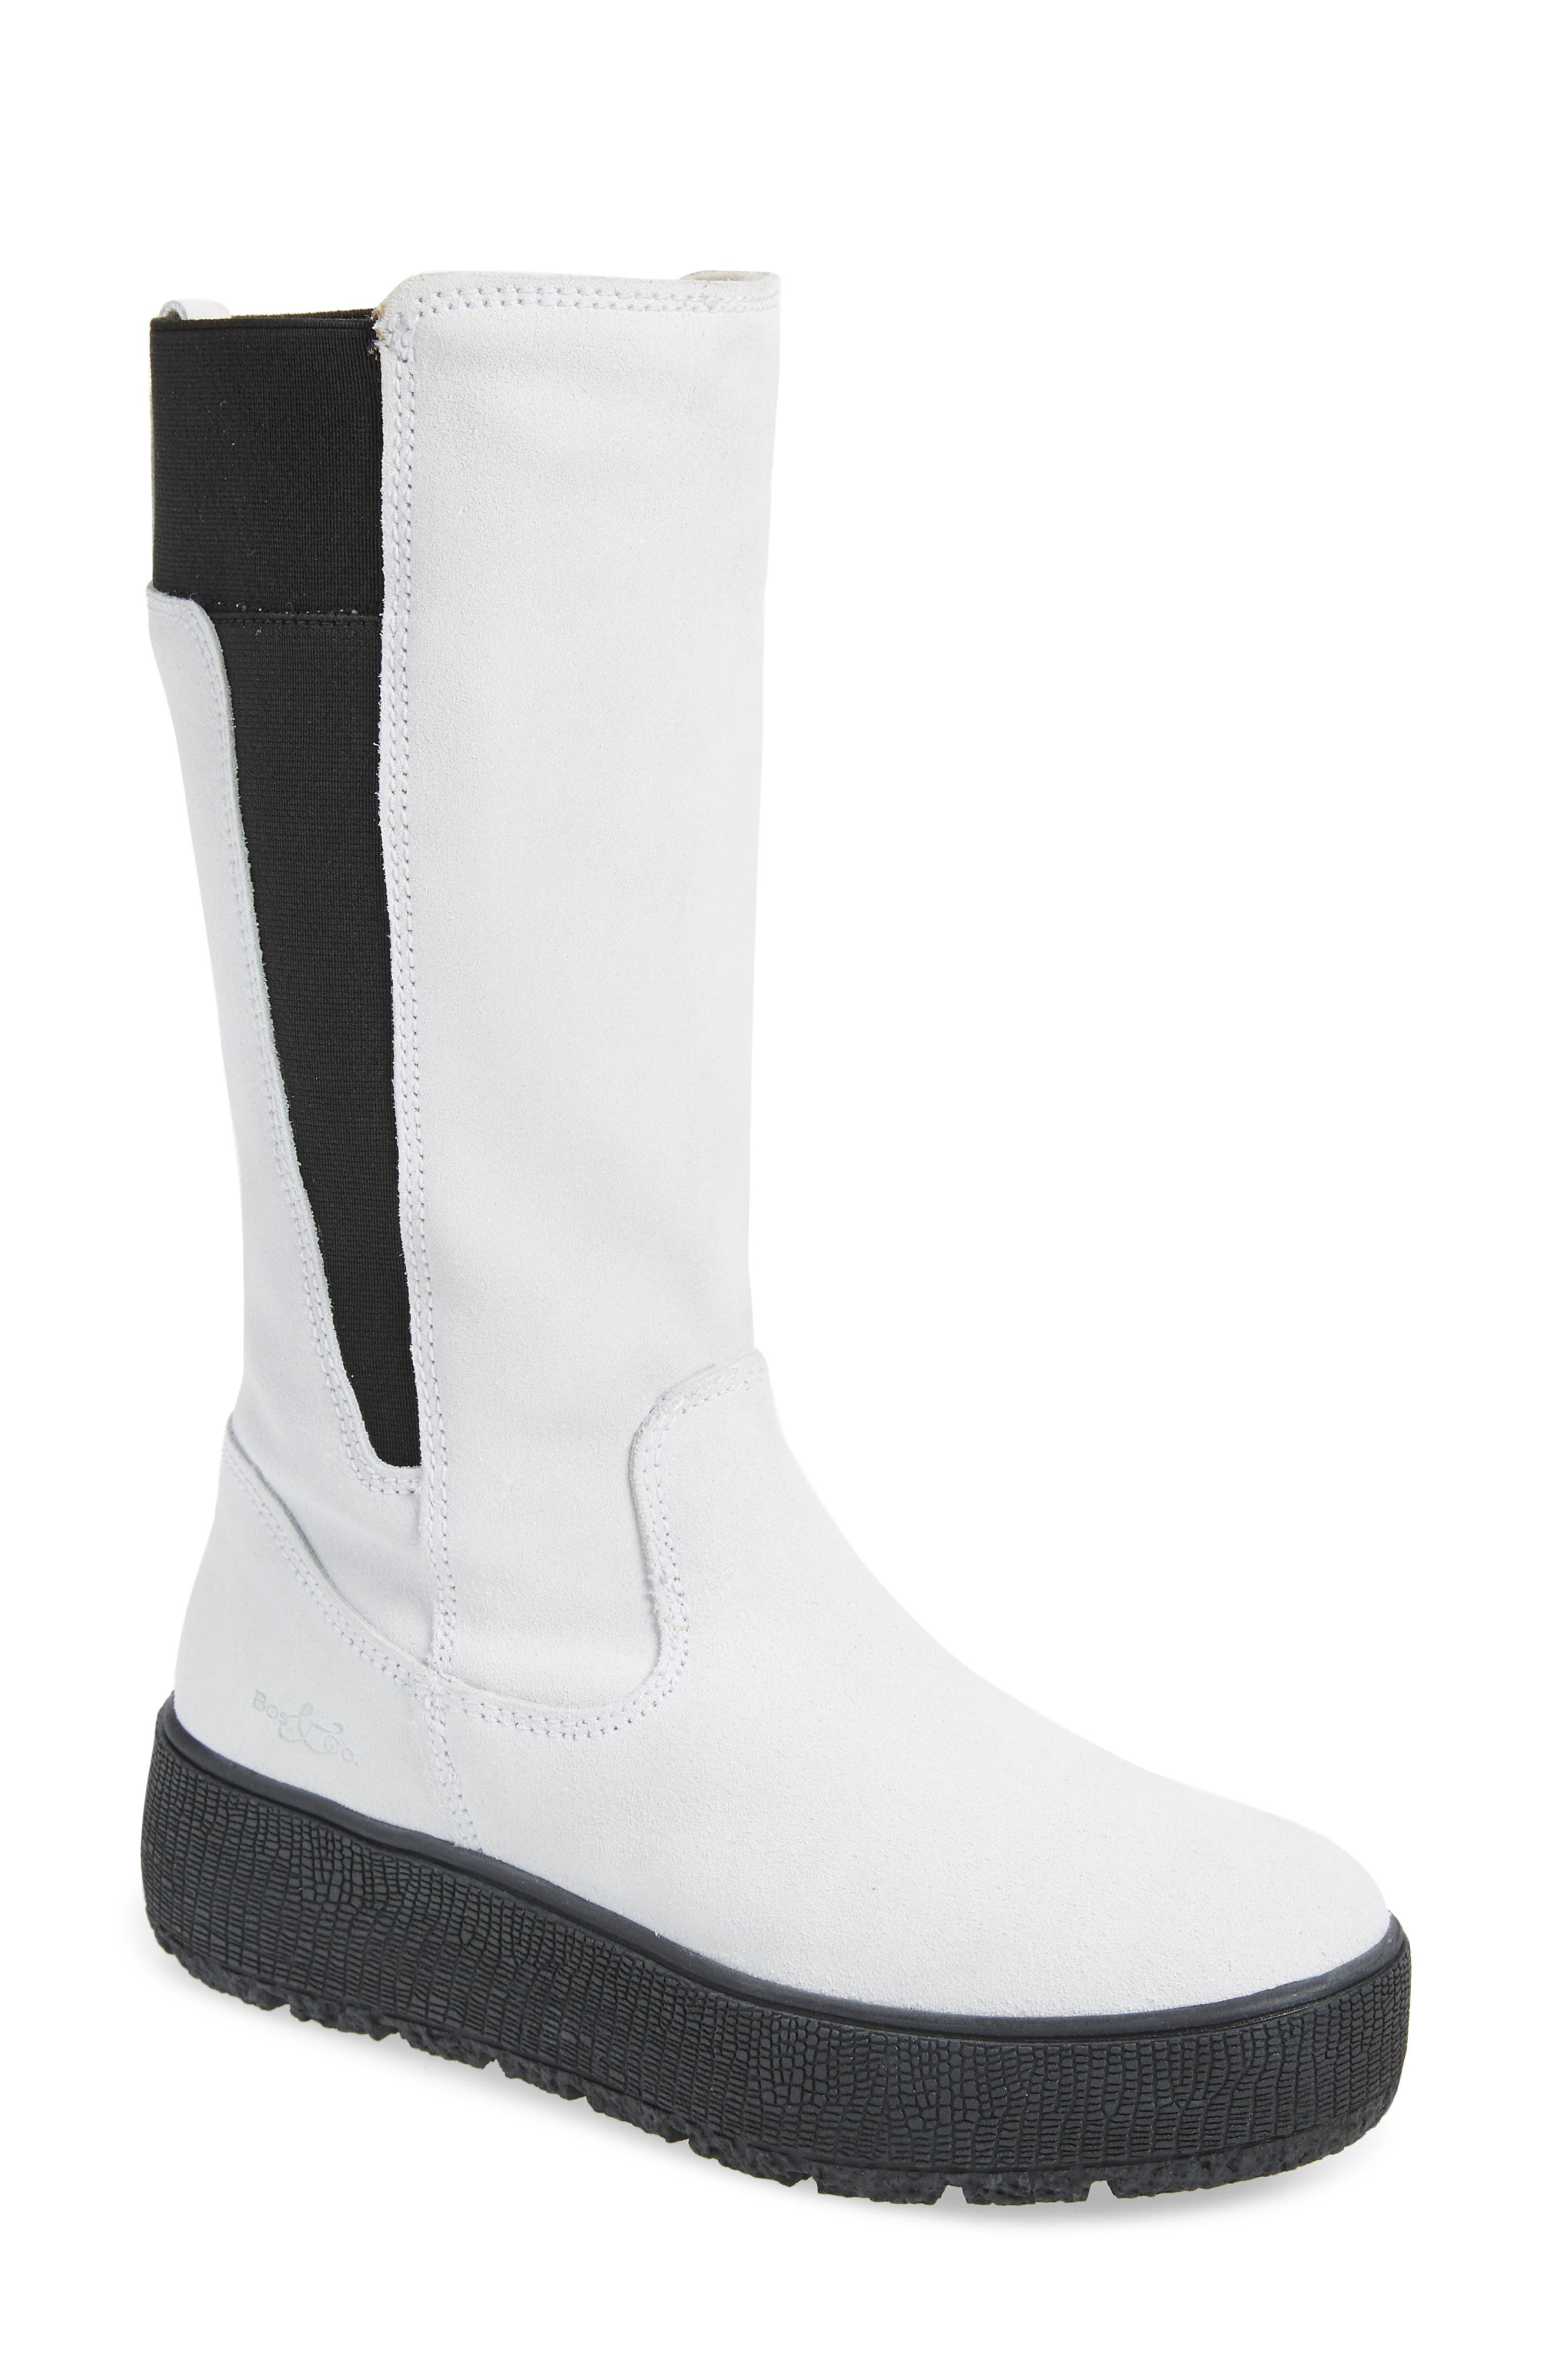 Merino wool lining adds soft, cozy comfort to a mid-calf boot that\\\'s ready to take on the elements thanks to a waterproof finish. Style Name: Bos. & Co. Impact Waterproof Boot (Women). Style Number: 6086152. Available in stores.